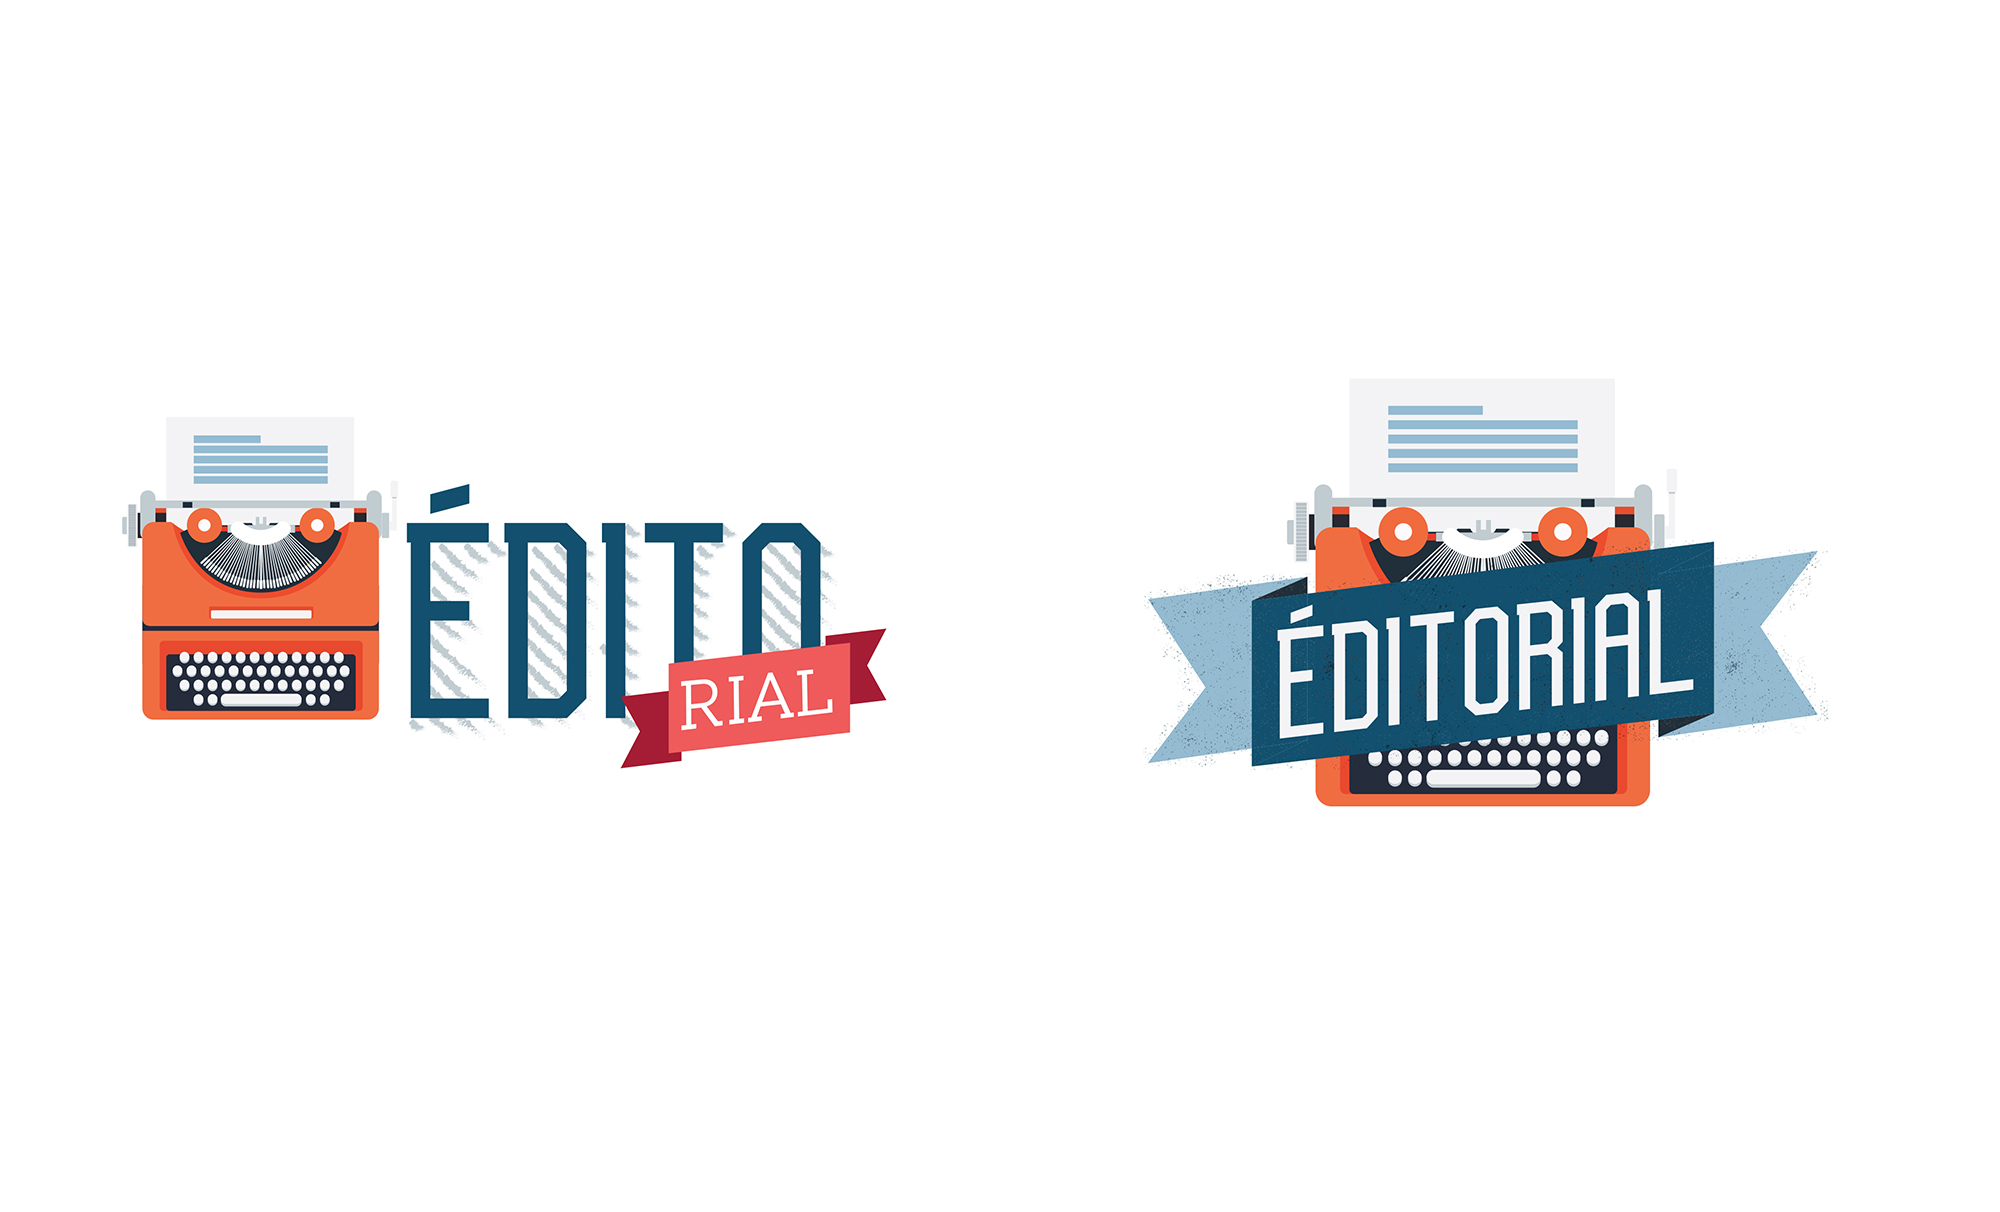 EDITO-EDITION-REDACTION-ICONE-PICTOGRAMME-NEWSLETTER-COMMUNICATION-EXTERNE